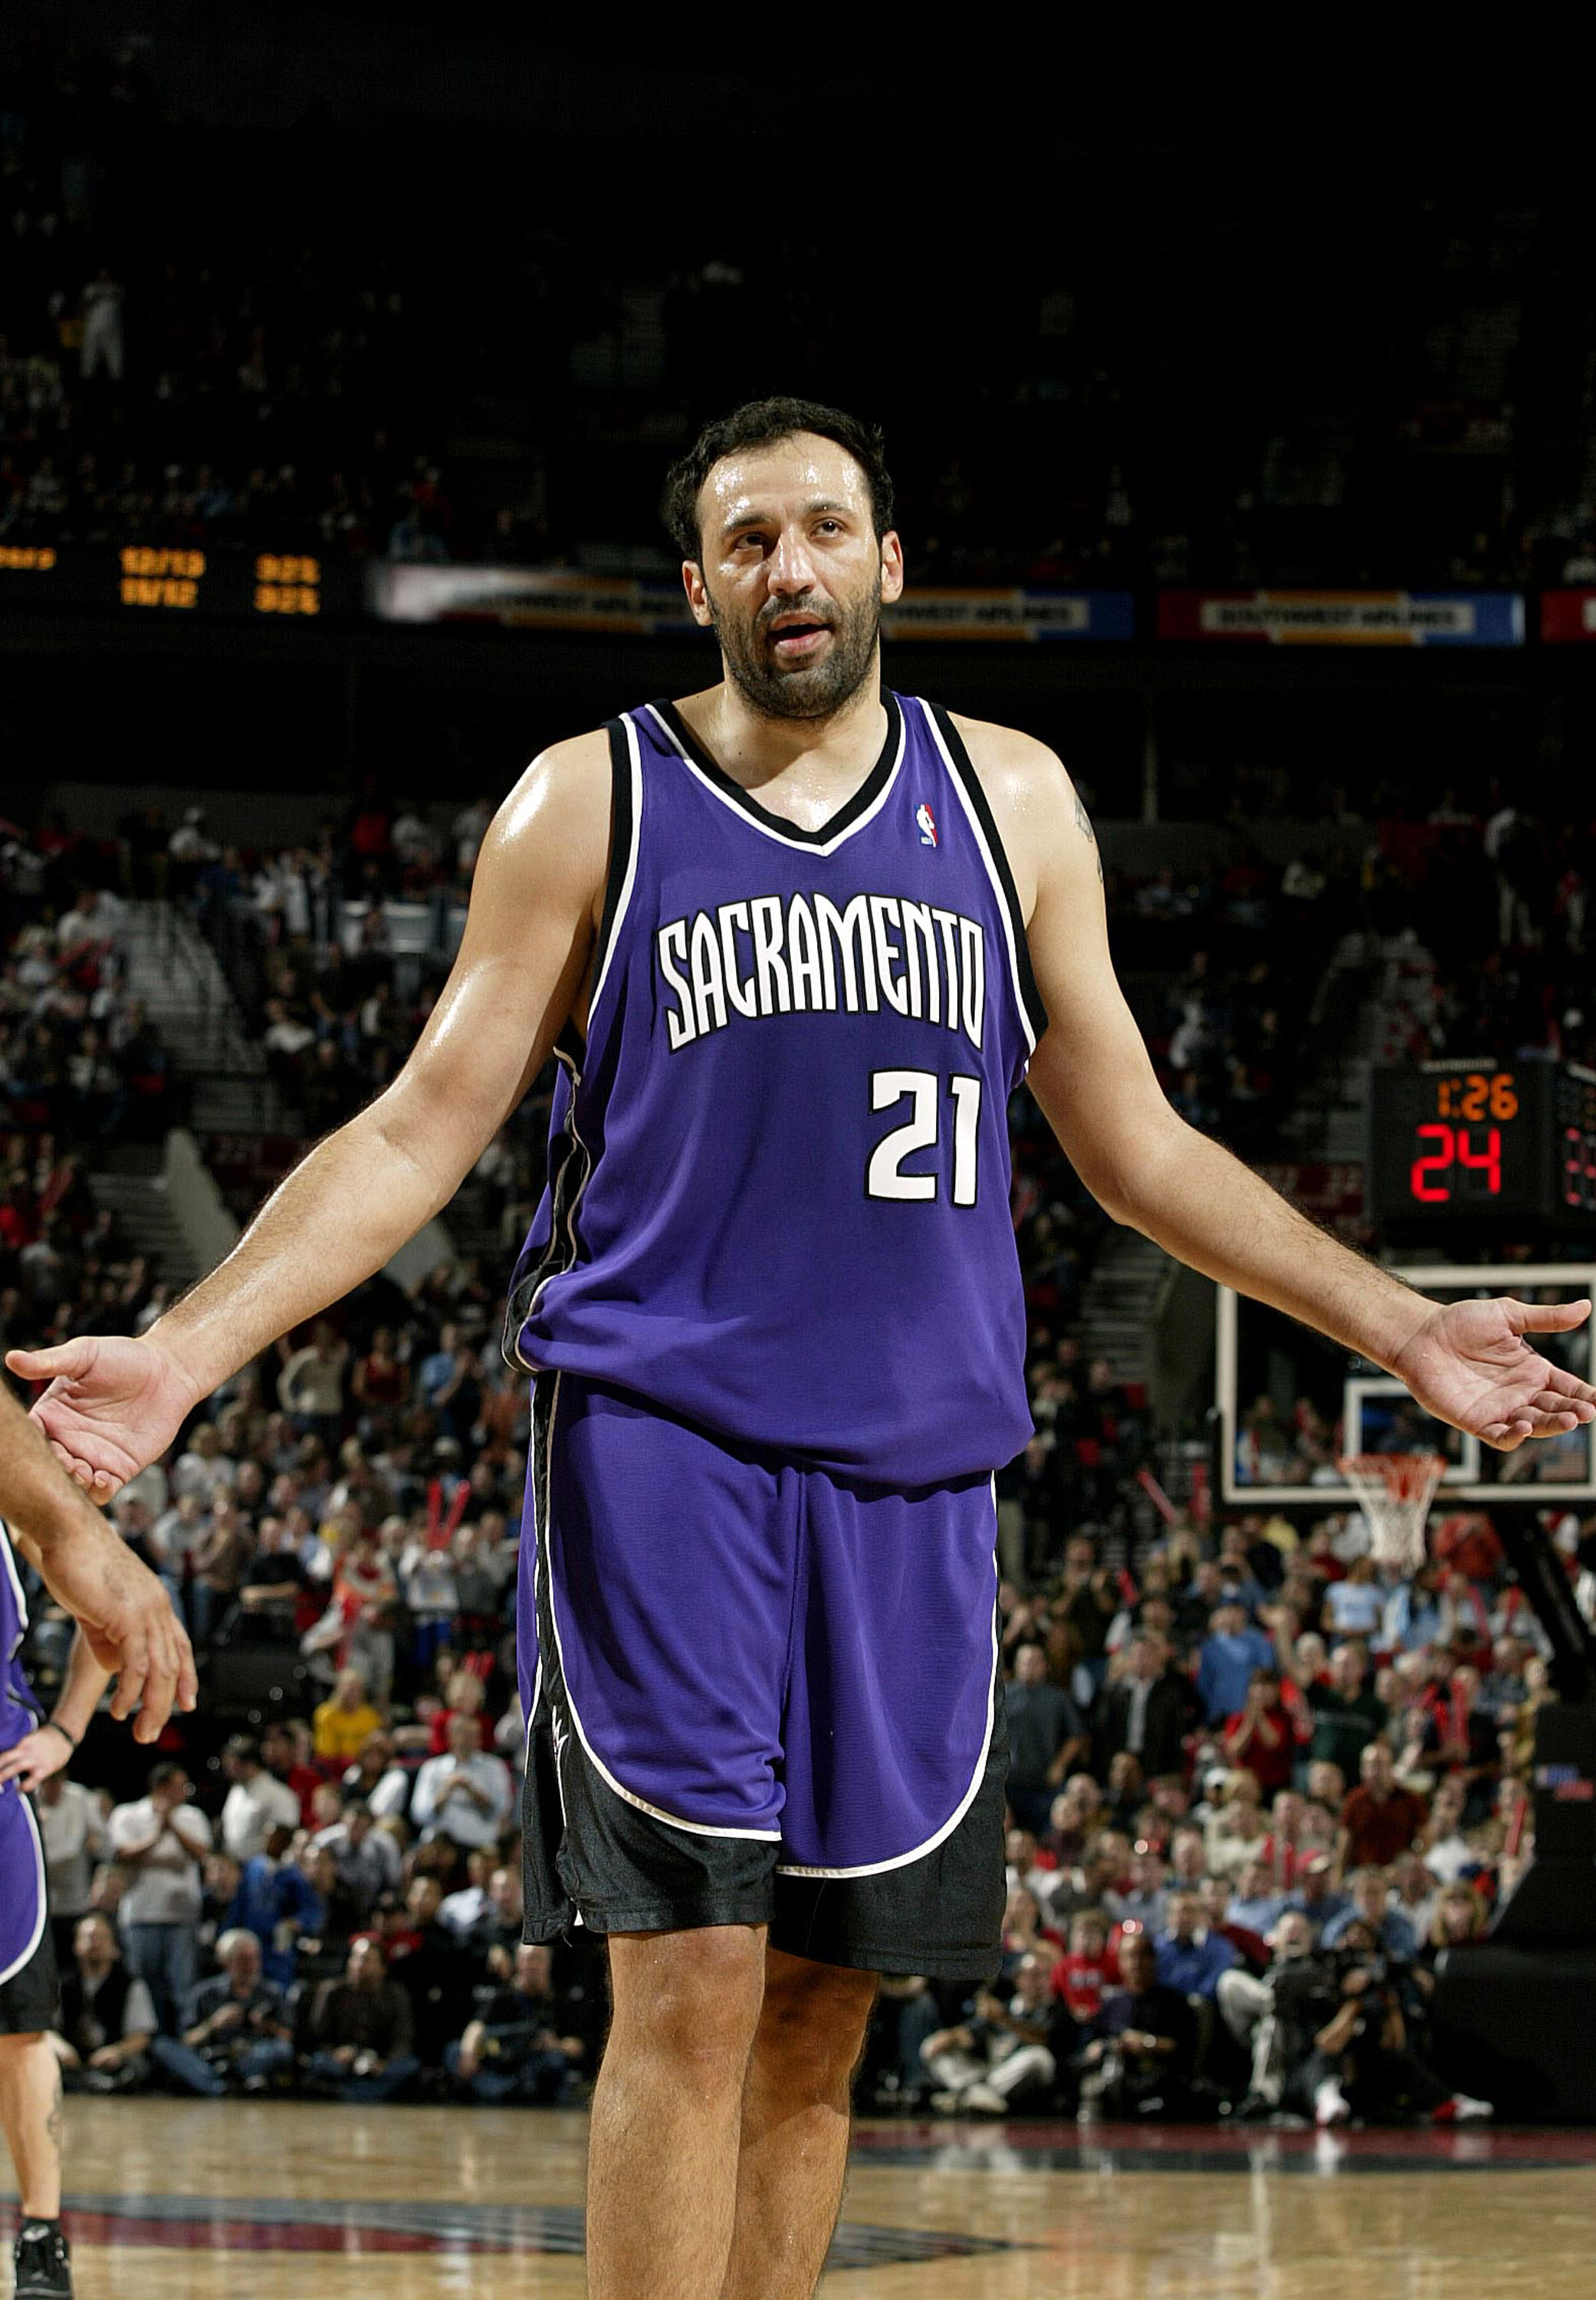 PORTLAND, OR - NOVEMBER13:  Vlade Divac #21 of the Sacramento Kings reacts to fouling out against the Portland Trail Blazers November 13, 2003 at the Rose Garden in Portland, Oregon.  NOTE TO USER: User expressly acknowledges and agrees that, by downloadi